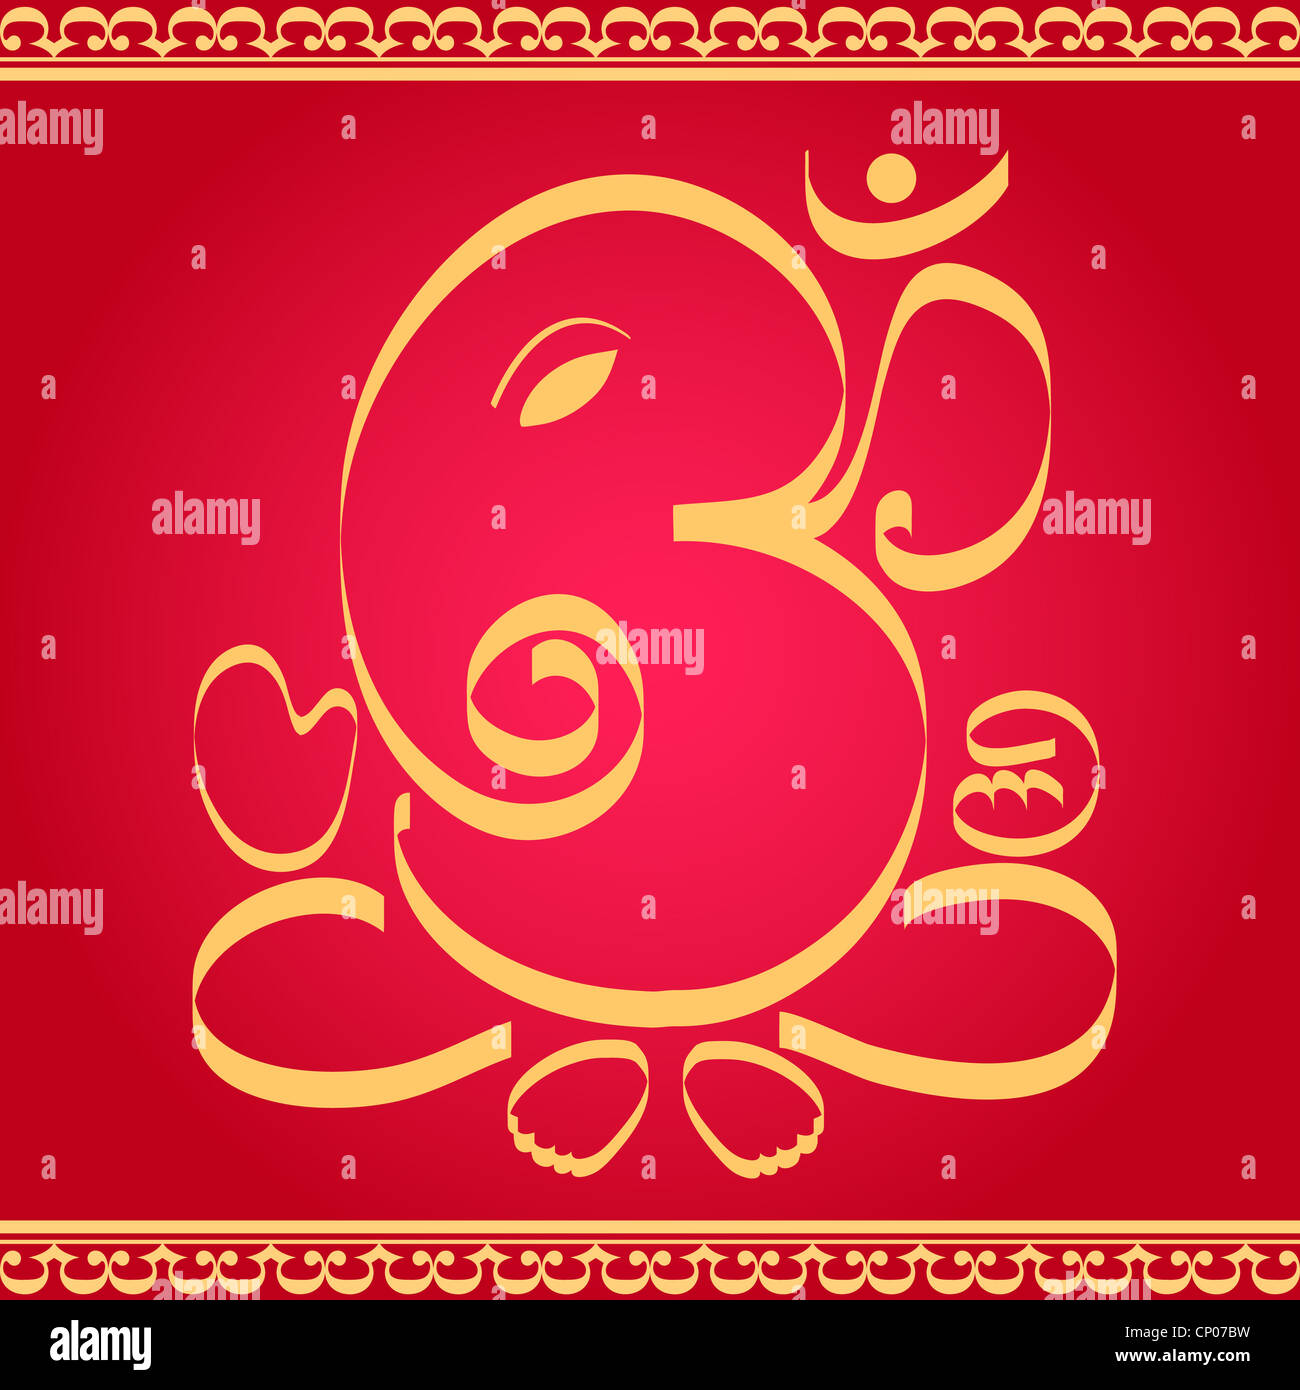 Indian God Om Ganesha Design Stock Photos Indian God Om Ganesha